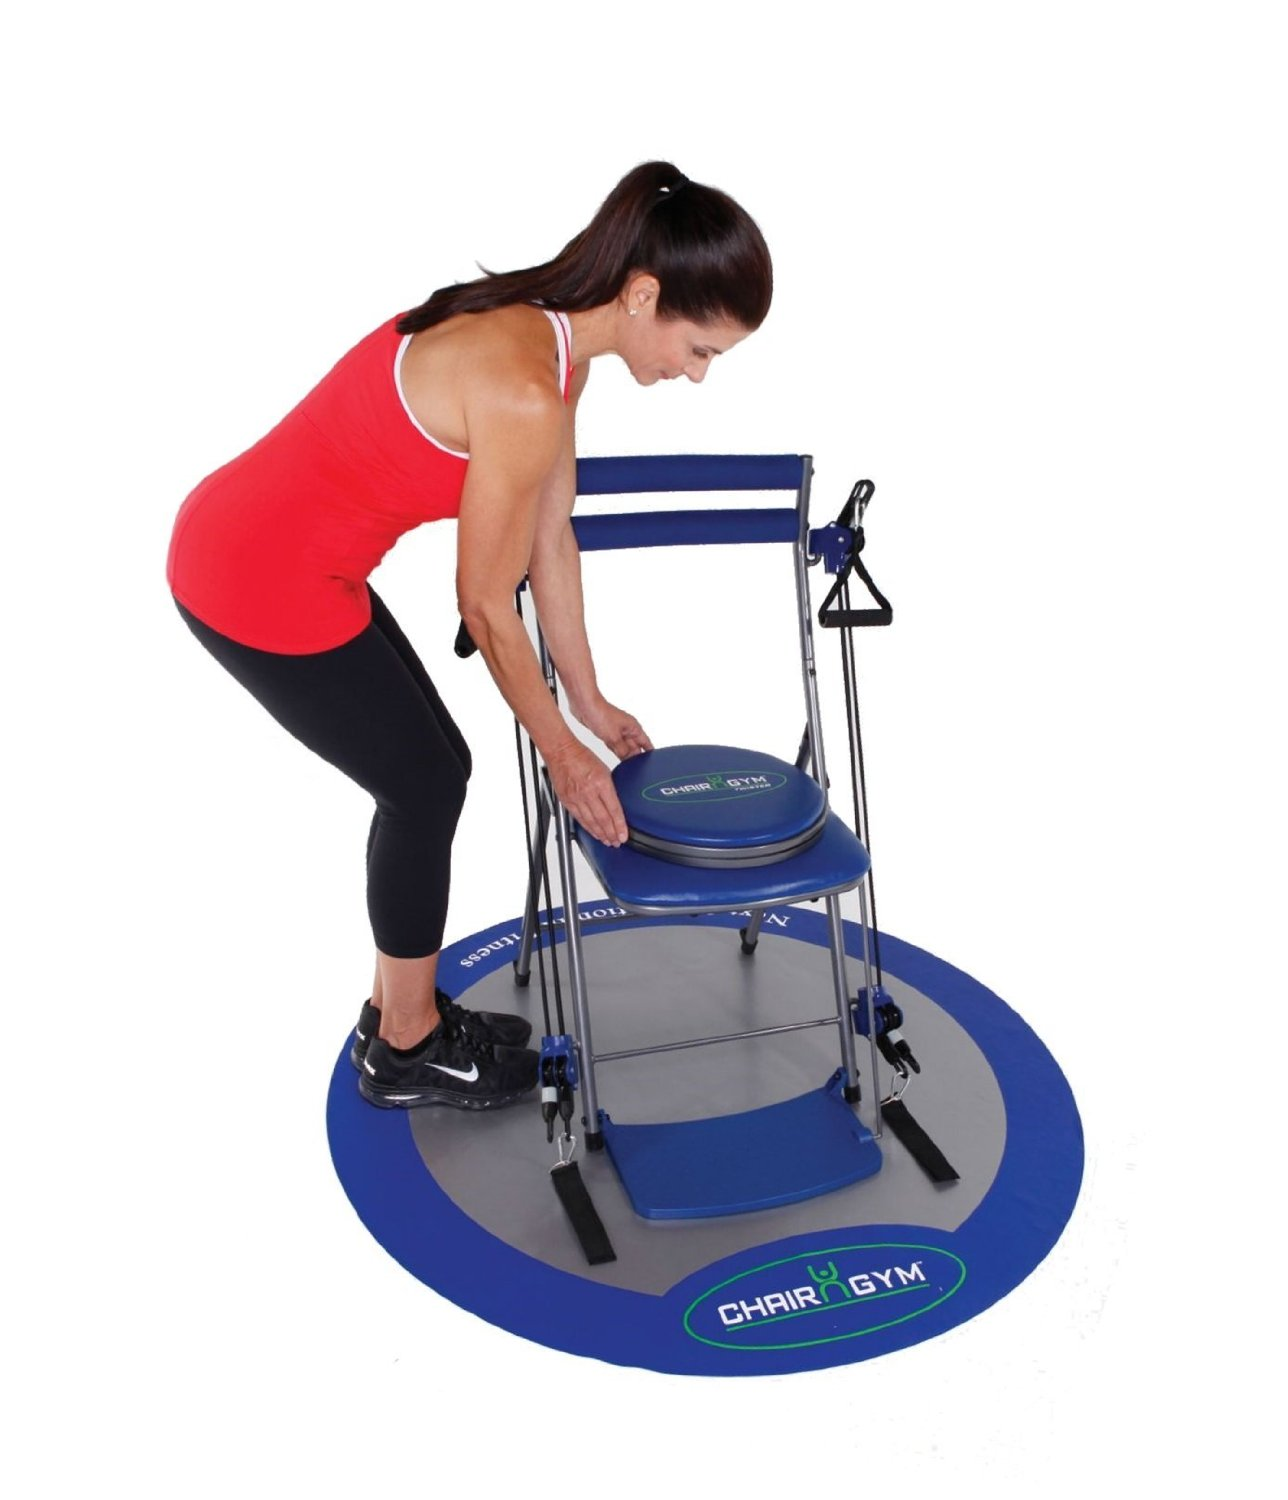 chair gym exercise system with twister seat shower chairs for handicap as seen on tv total body workout blue walmart com